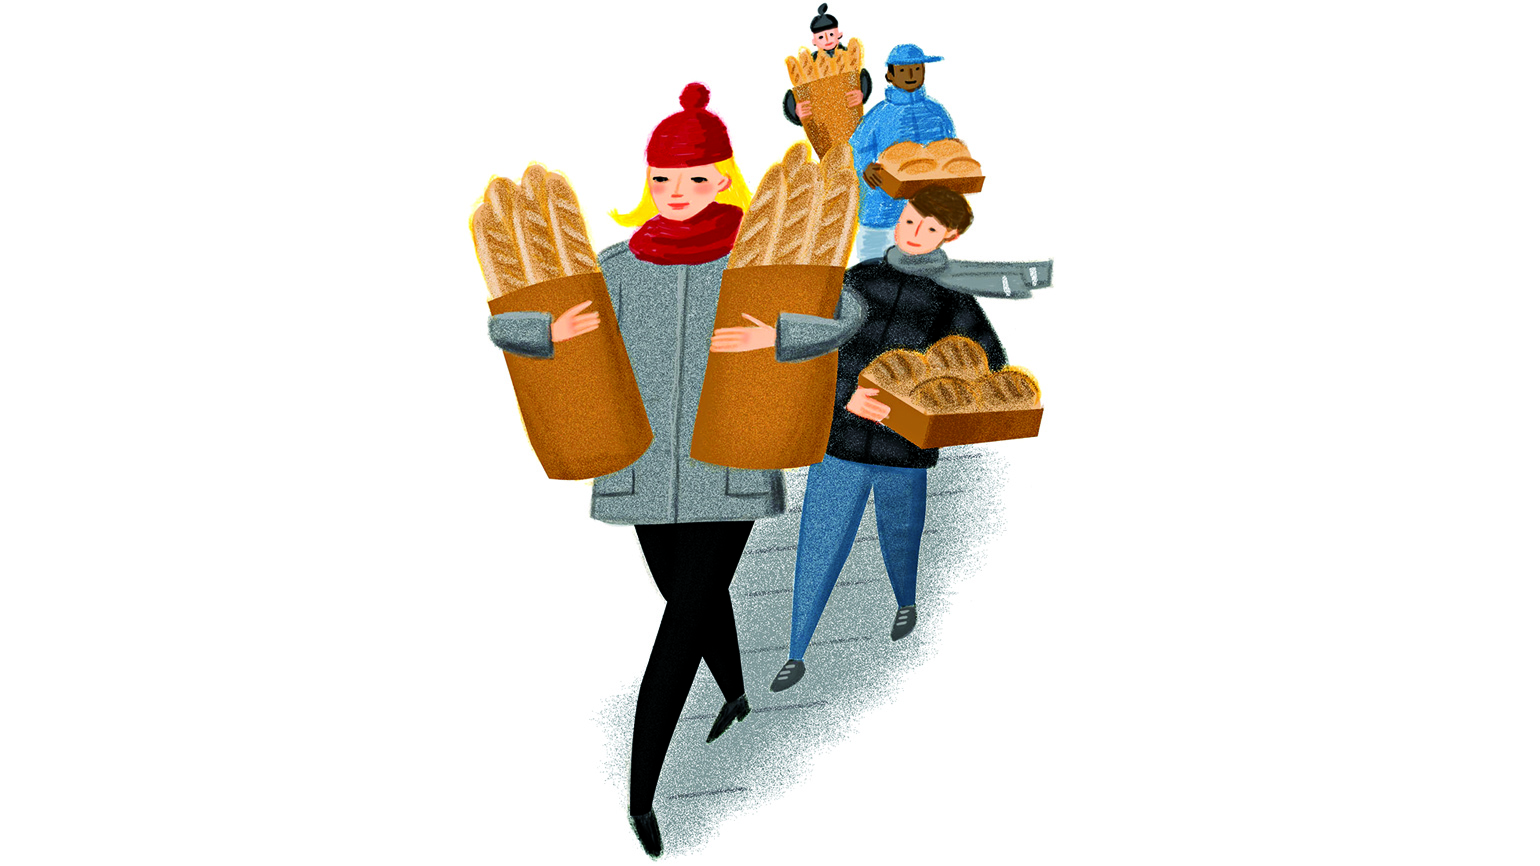 A trail of people dressed warmly carrying various types of bread.